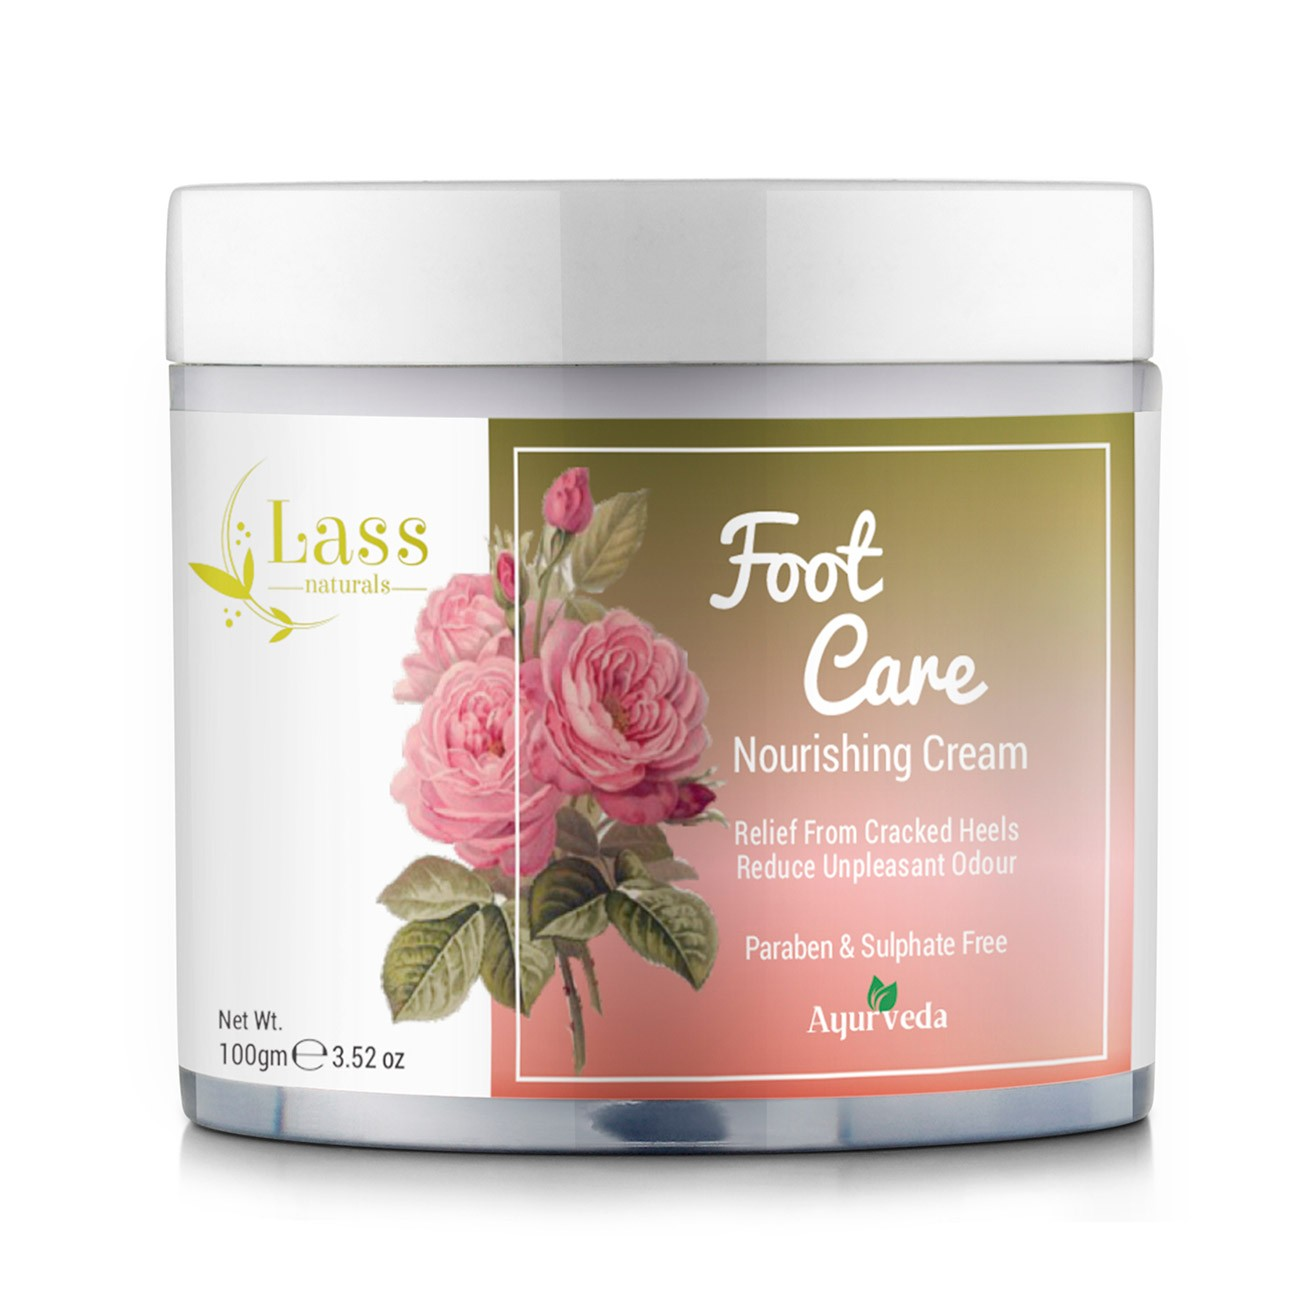 Foot Care Nourishing Cream